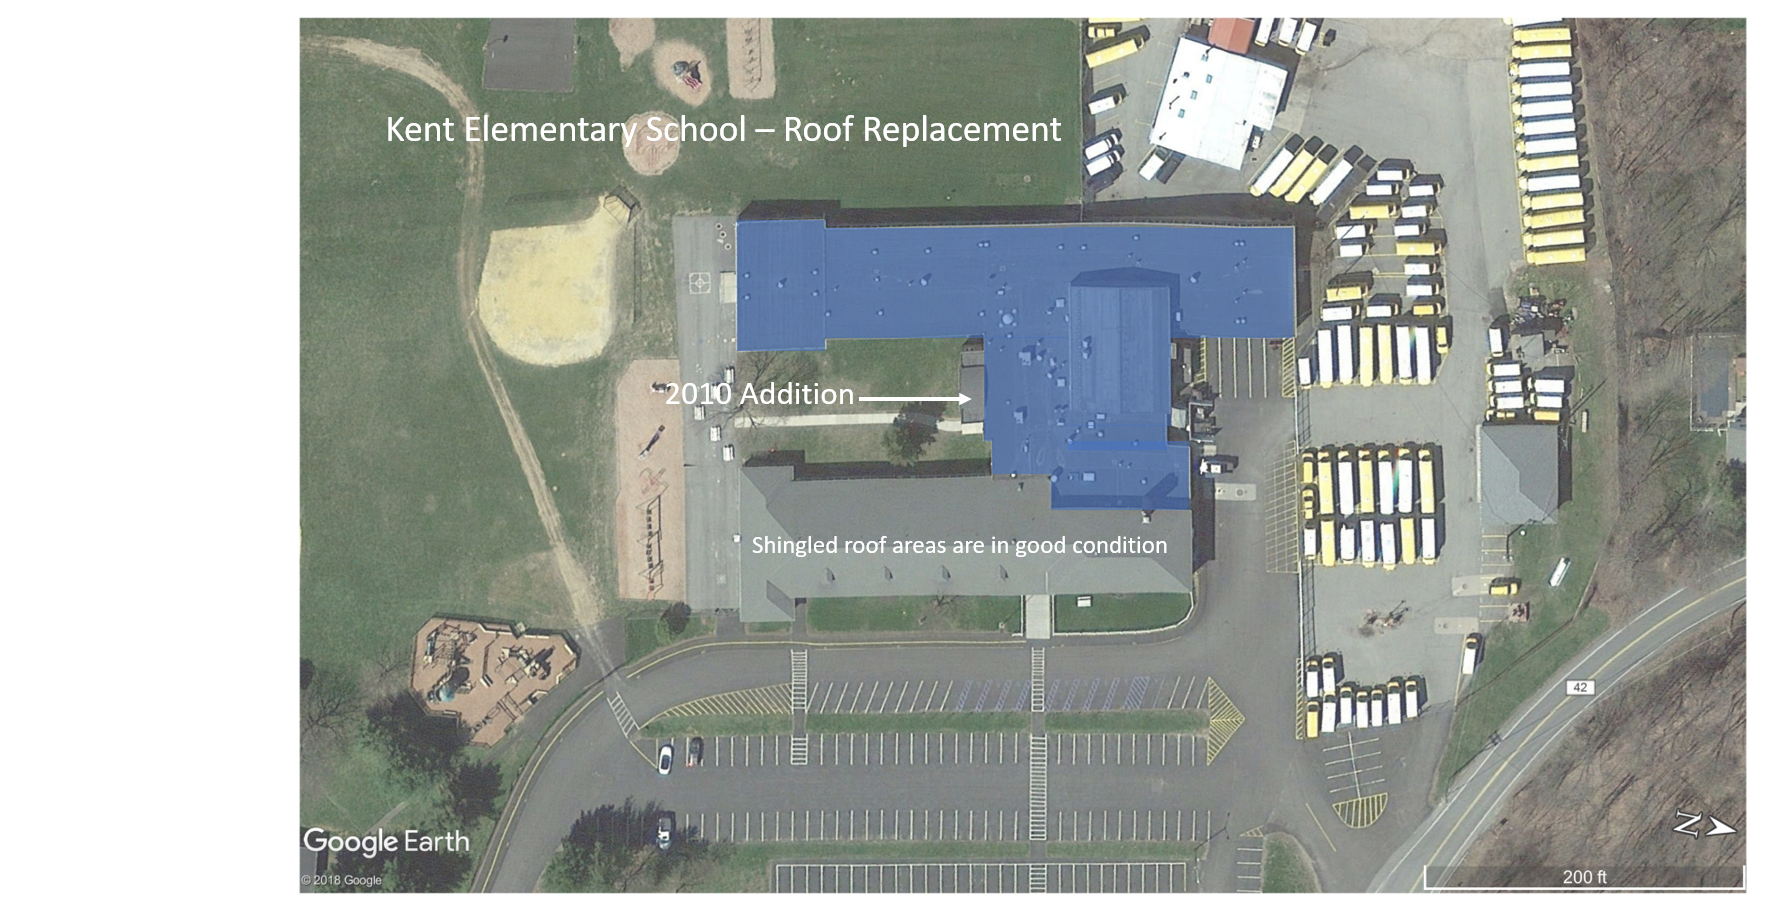 Kent Elementary School (replacement sections are shown in blue)